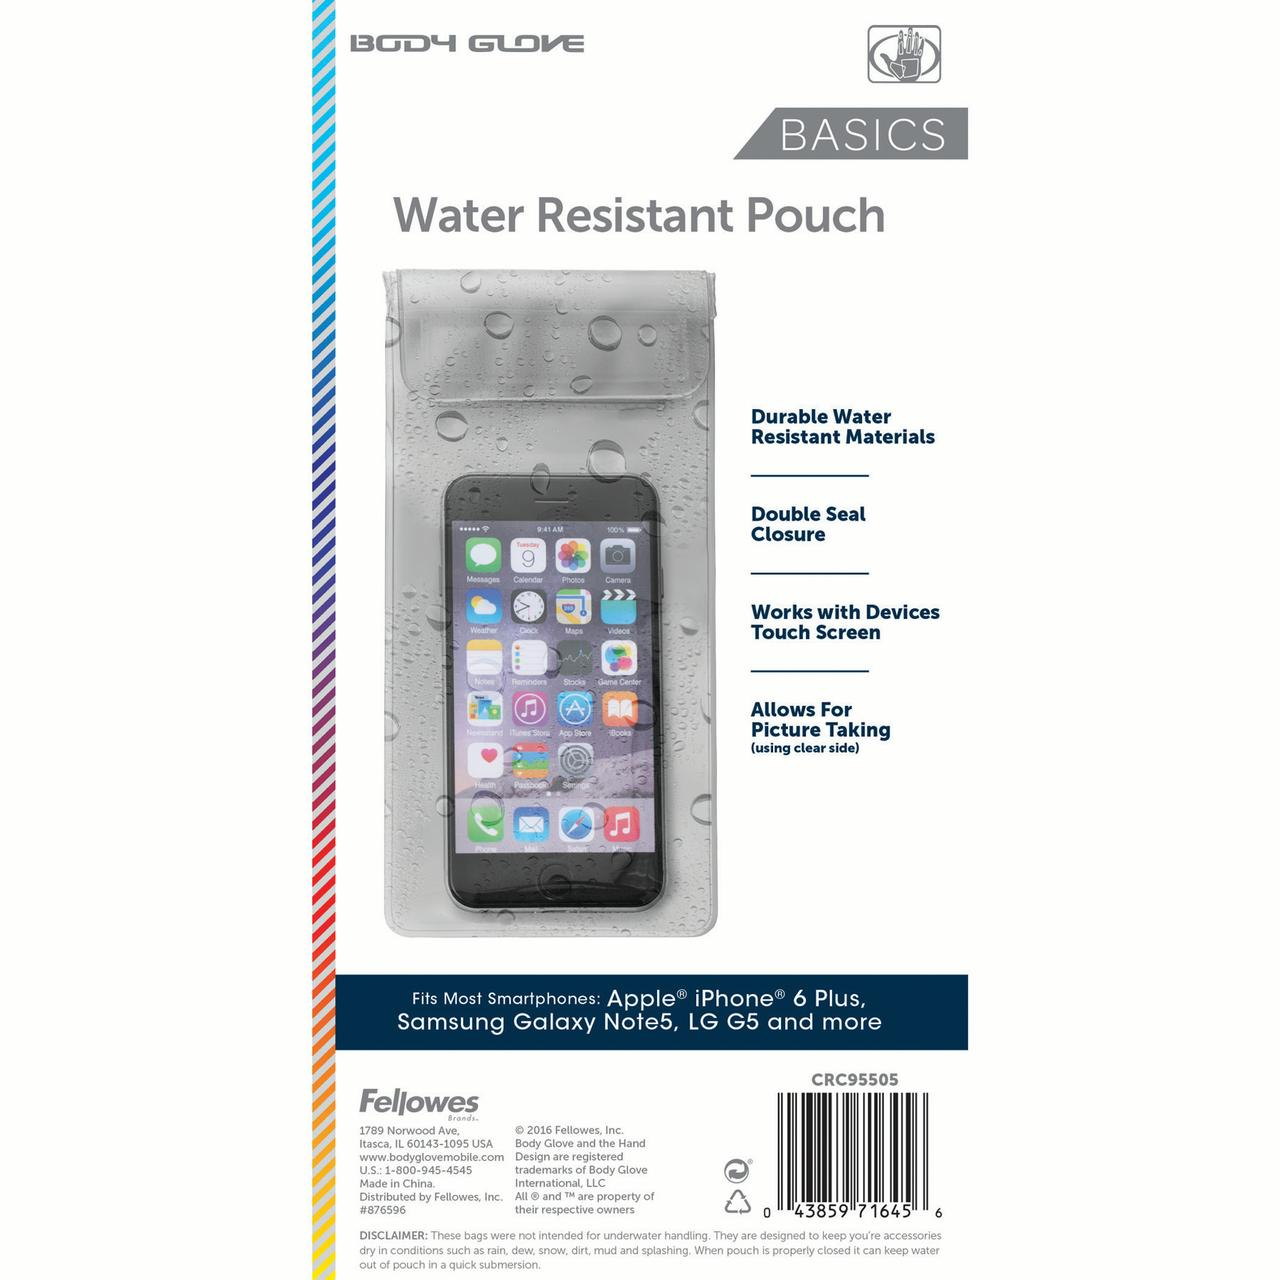 Body Glove Cell Phone Case Universal Water-Resistant Pouch